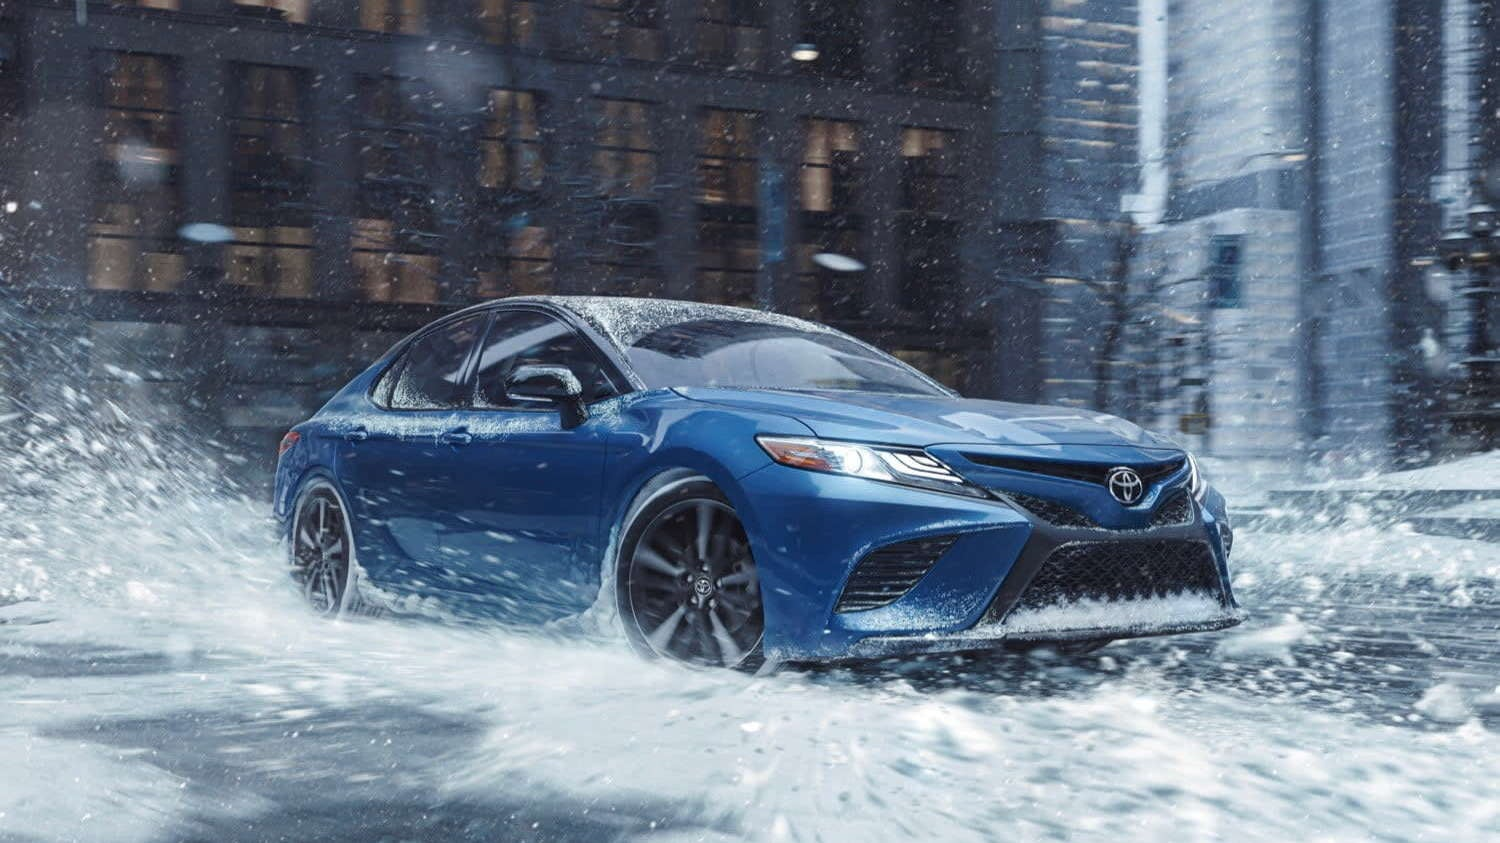 The Toyota Camry And Toyota Avalon Are Getting All-Wheel Drive